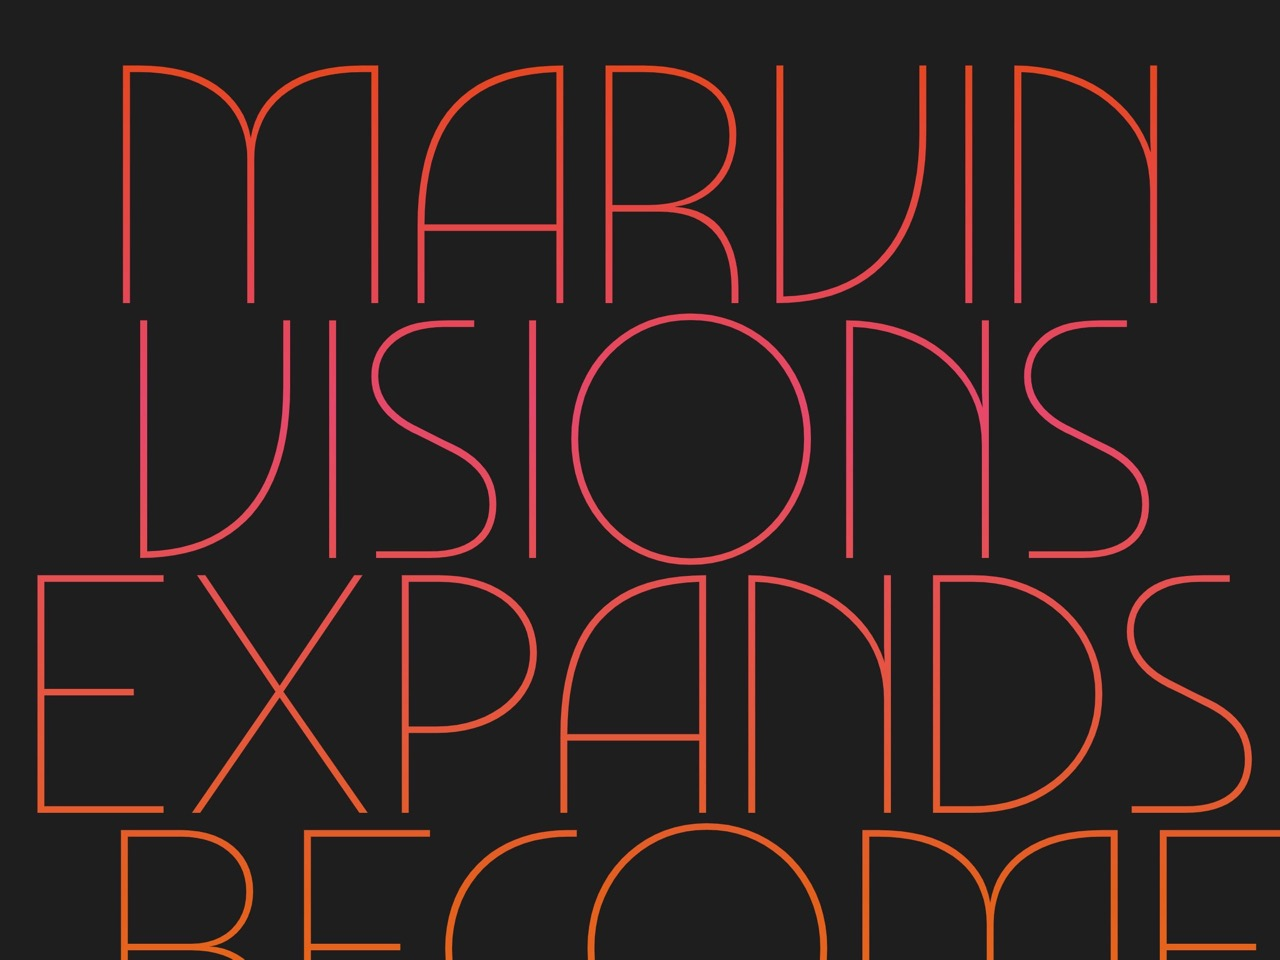 Marvin visions   an expressive variable font